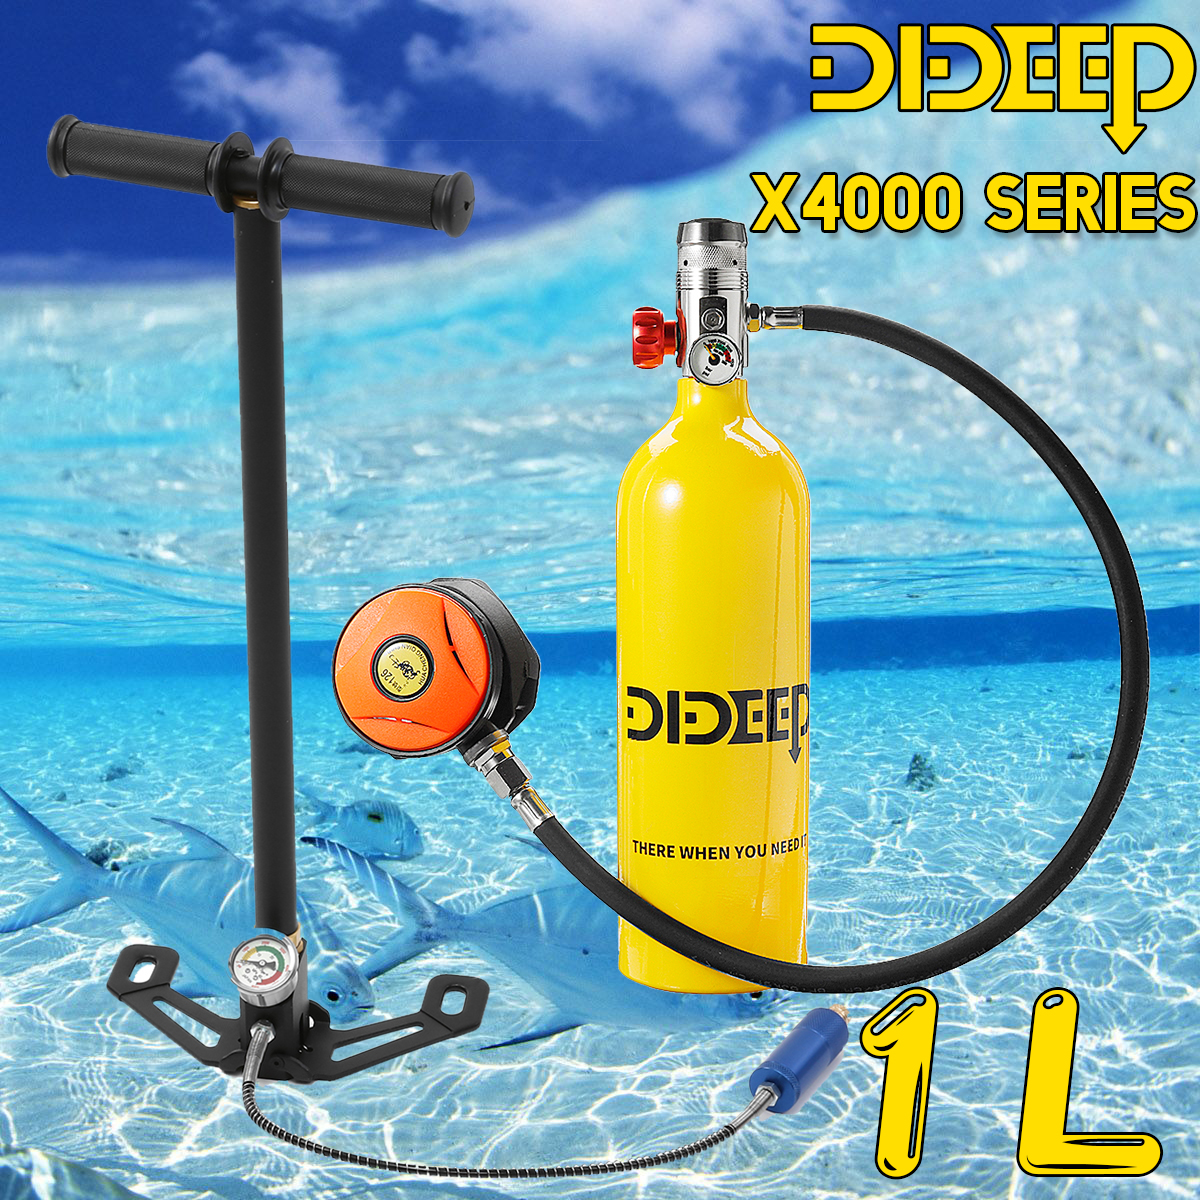 DIDEEP 1L/0.5L Scuba Oxygen Diving Equipment Air Tank Cylinder Diving Respirator Set Snorkeling Underwater Breathing Device New